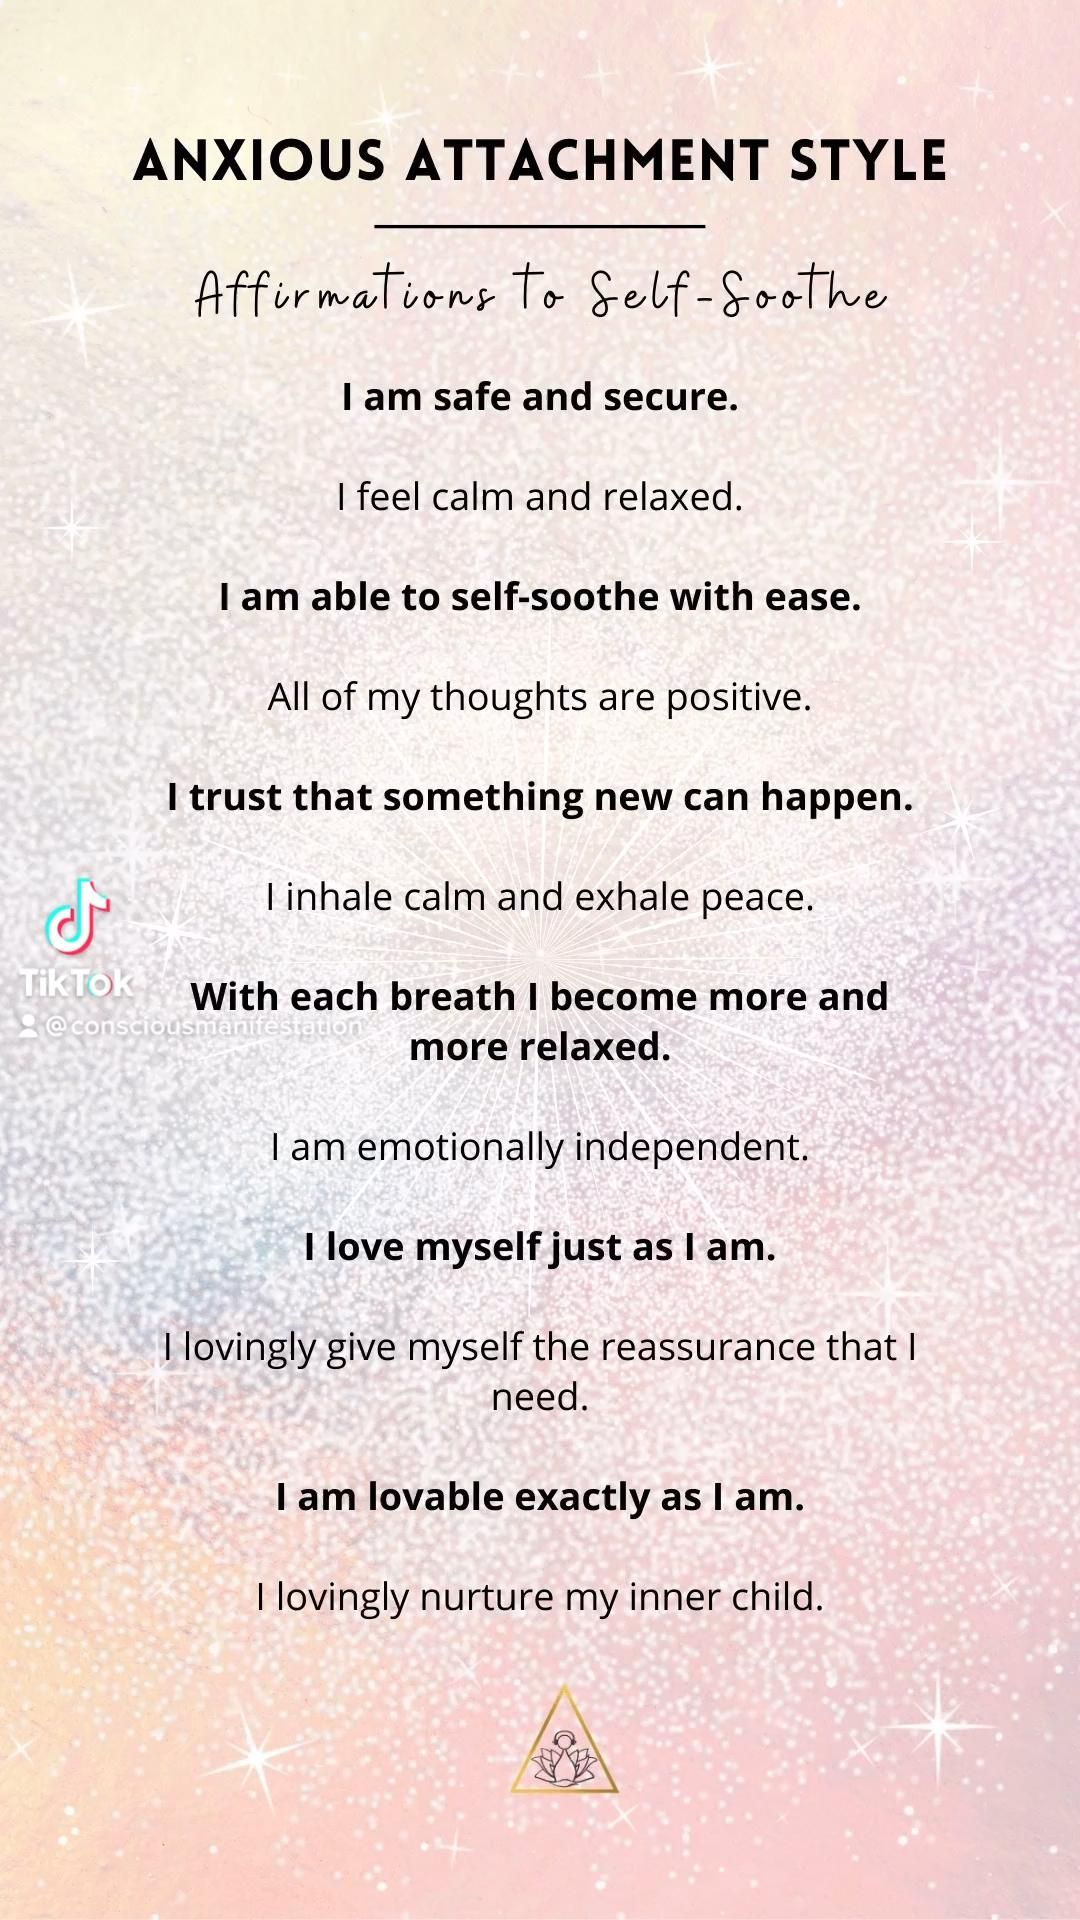 Anxious Attachment Style Affirmations